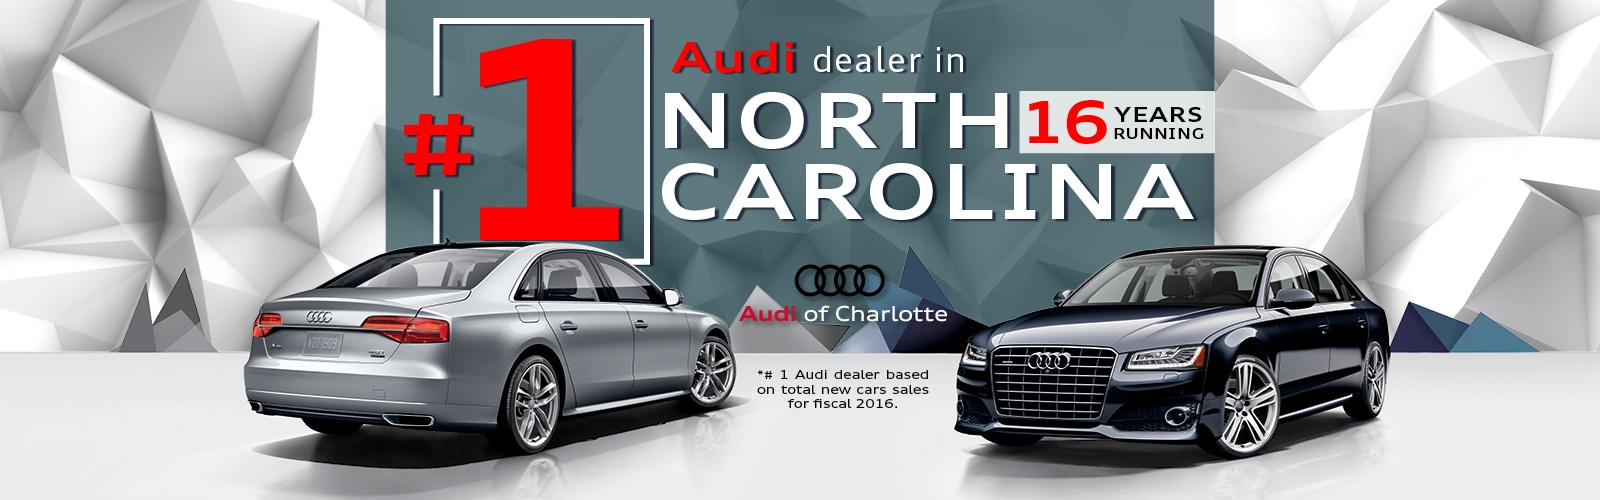 Used car dealer in concord nc serving charlotte gastonia html autos - Audi Of Charlotte In Matthews Serving Gastonia And Concord Nc Audi Of Charlotte